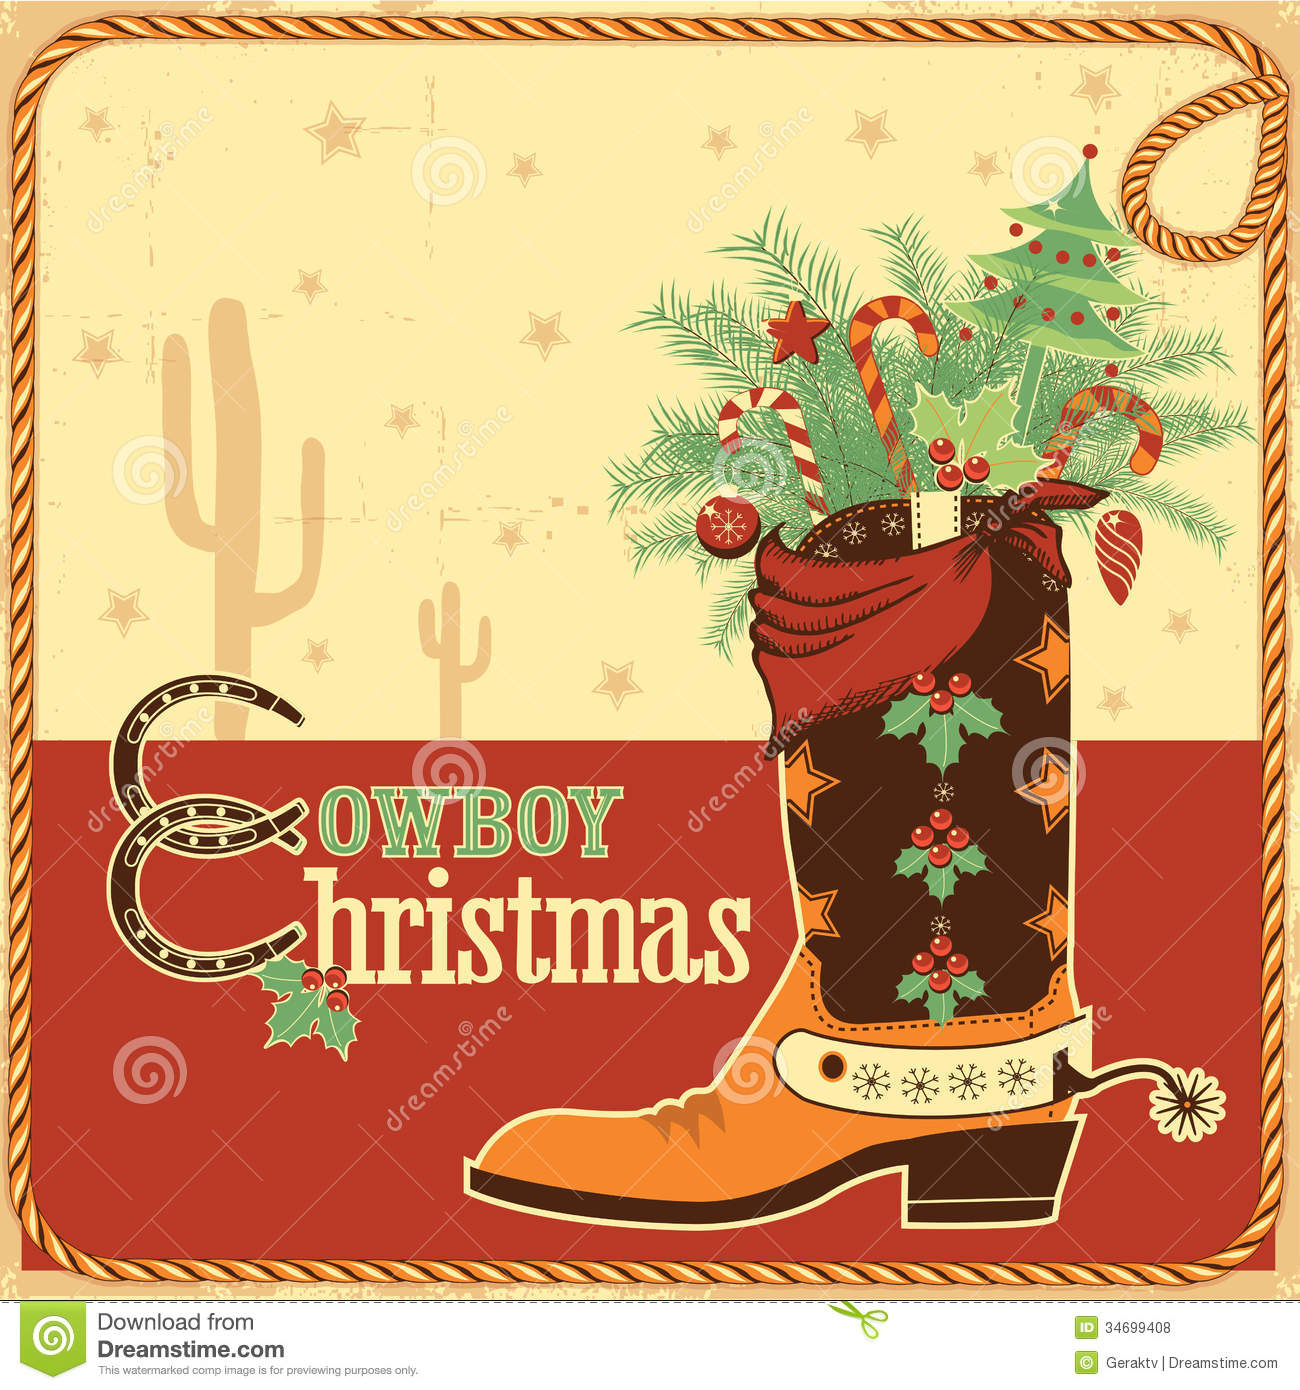 Cowboy Christmas Card With Text And Boot Royalty Free Stock Photos.